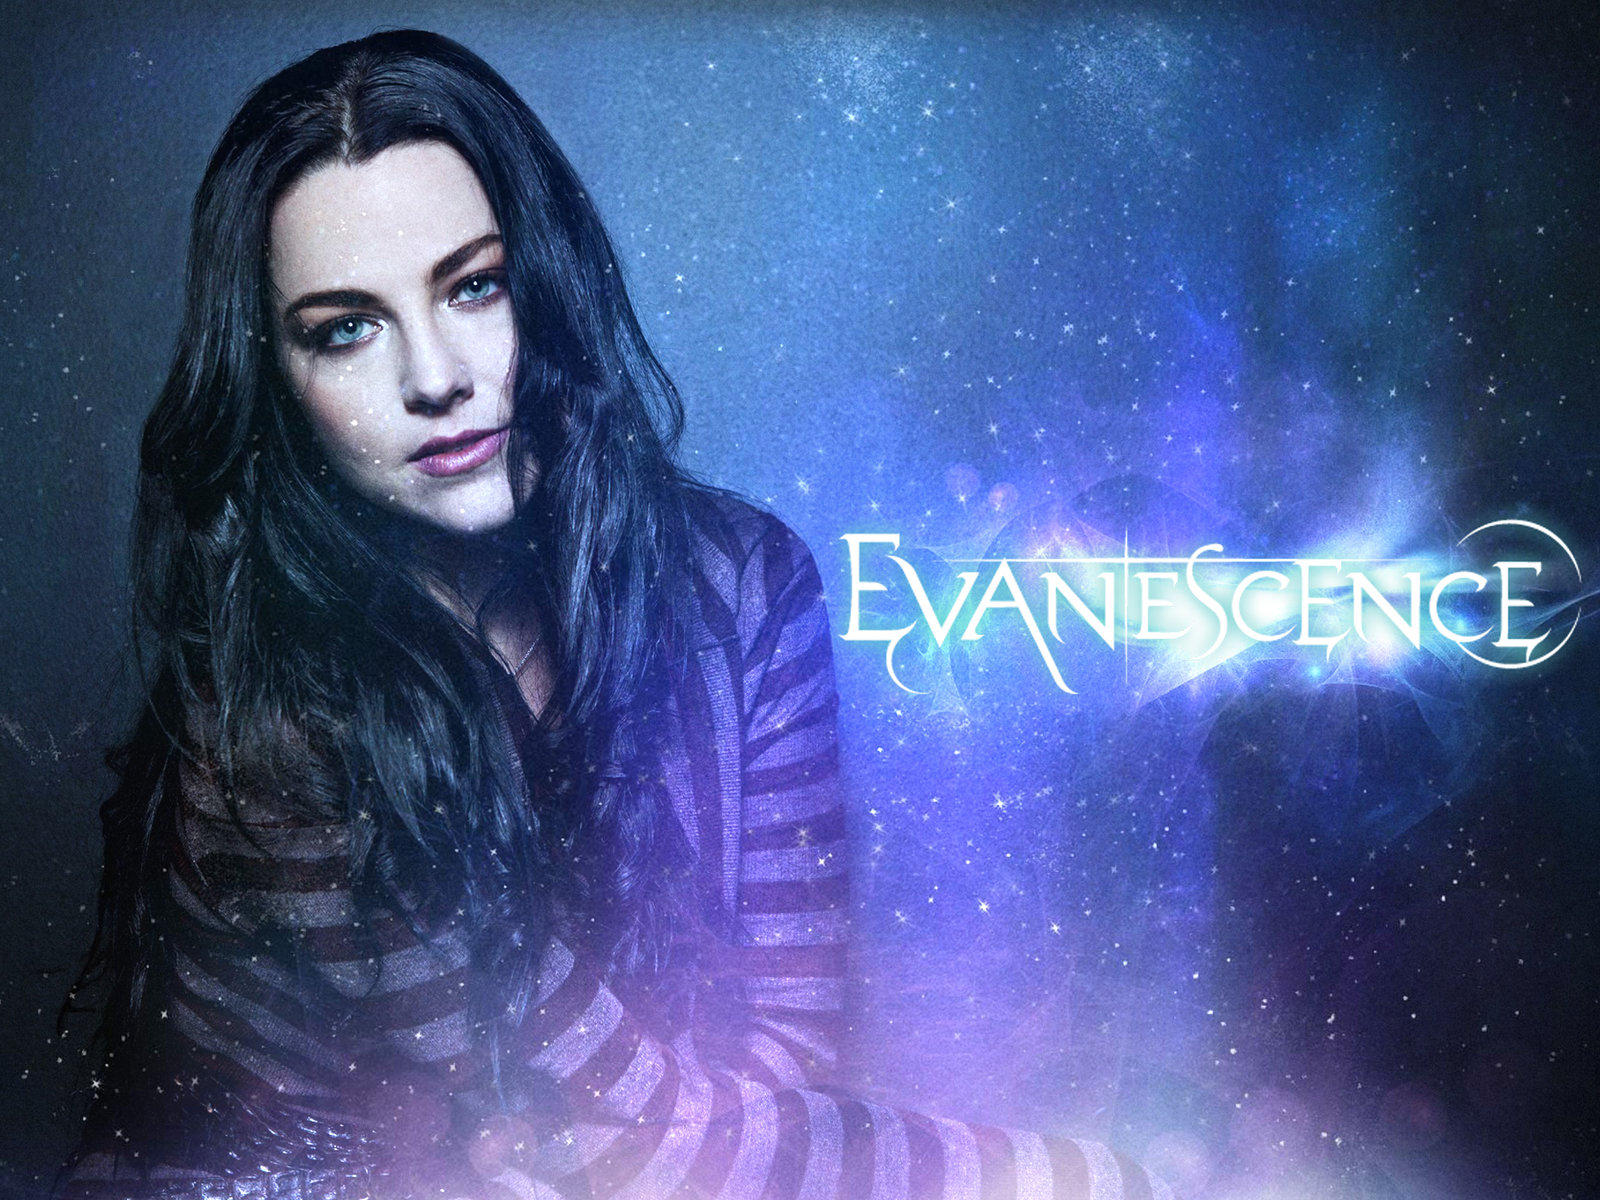 http://images5.fanpop.com/image/photos/30500000/Evanescence-evanescence-30515076-1600-1200.jpg